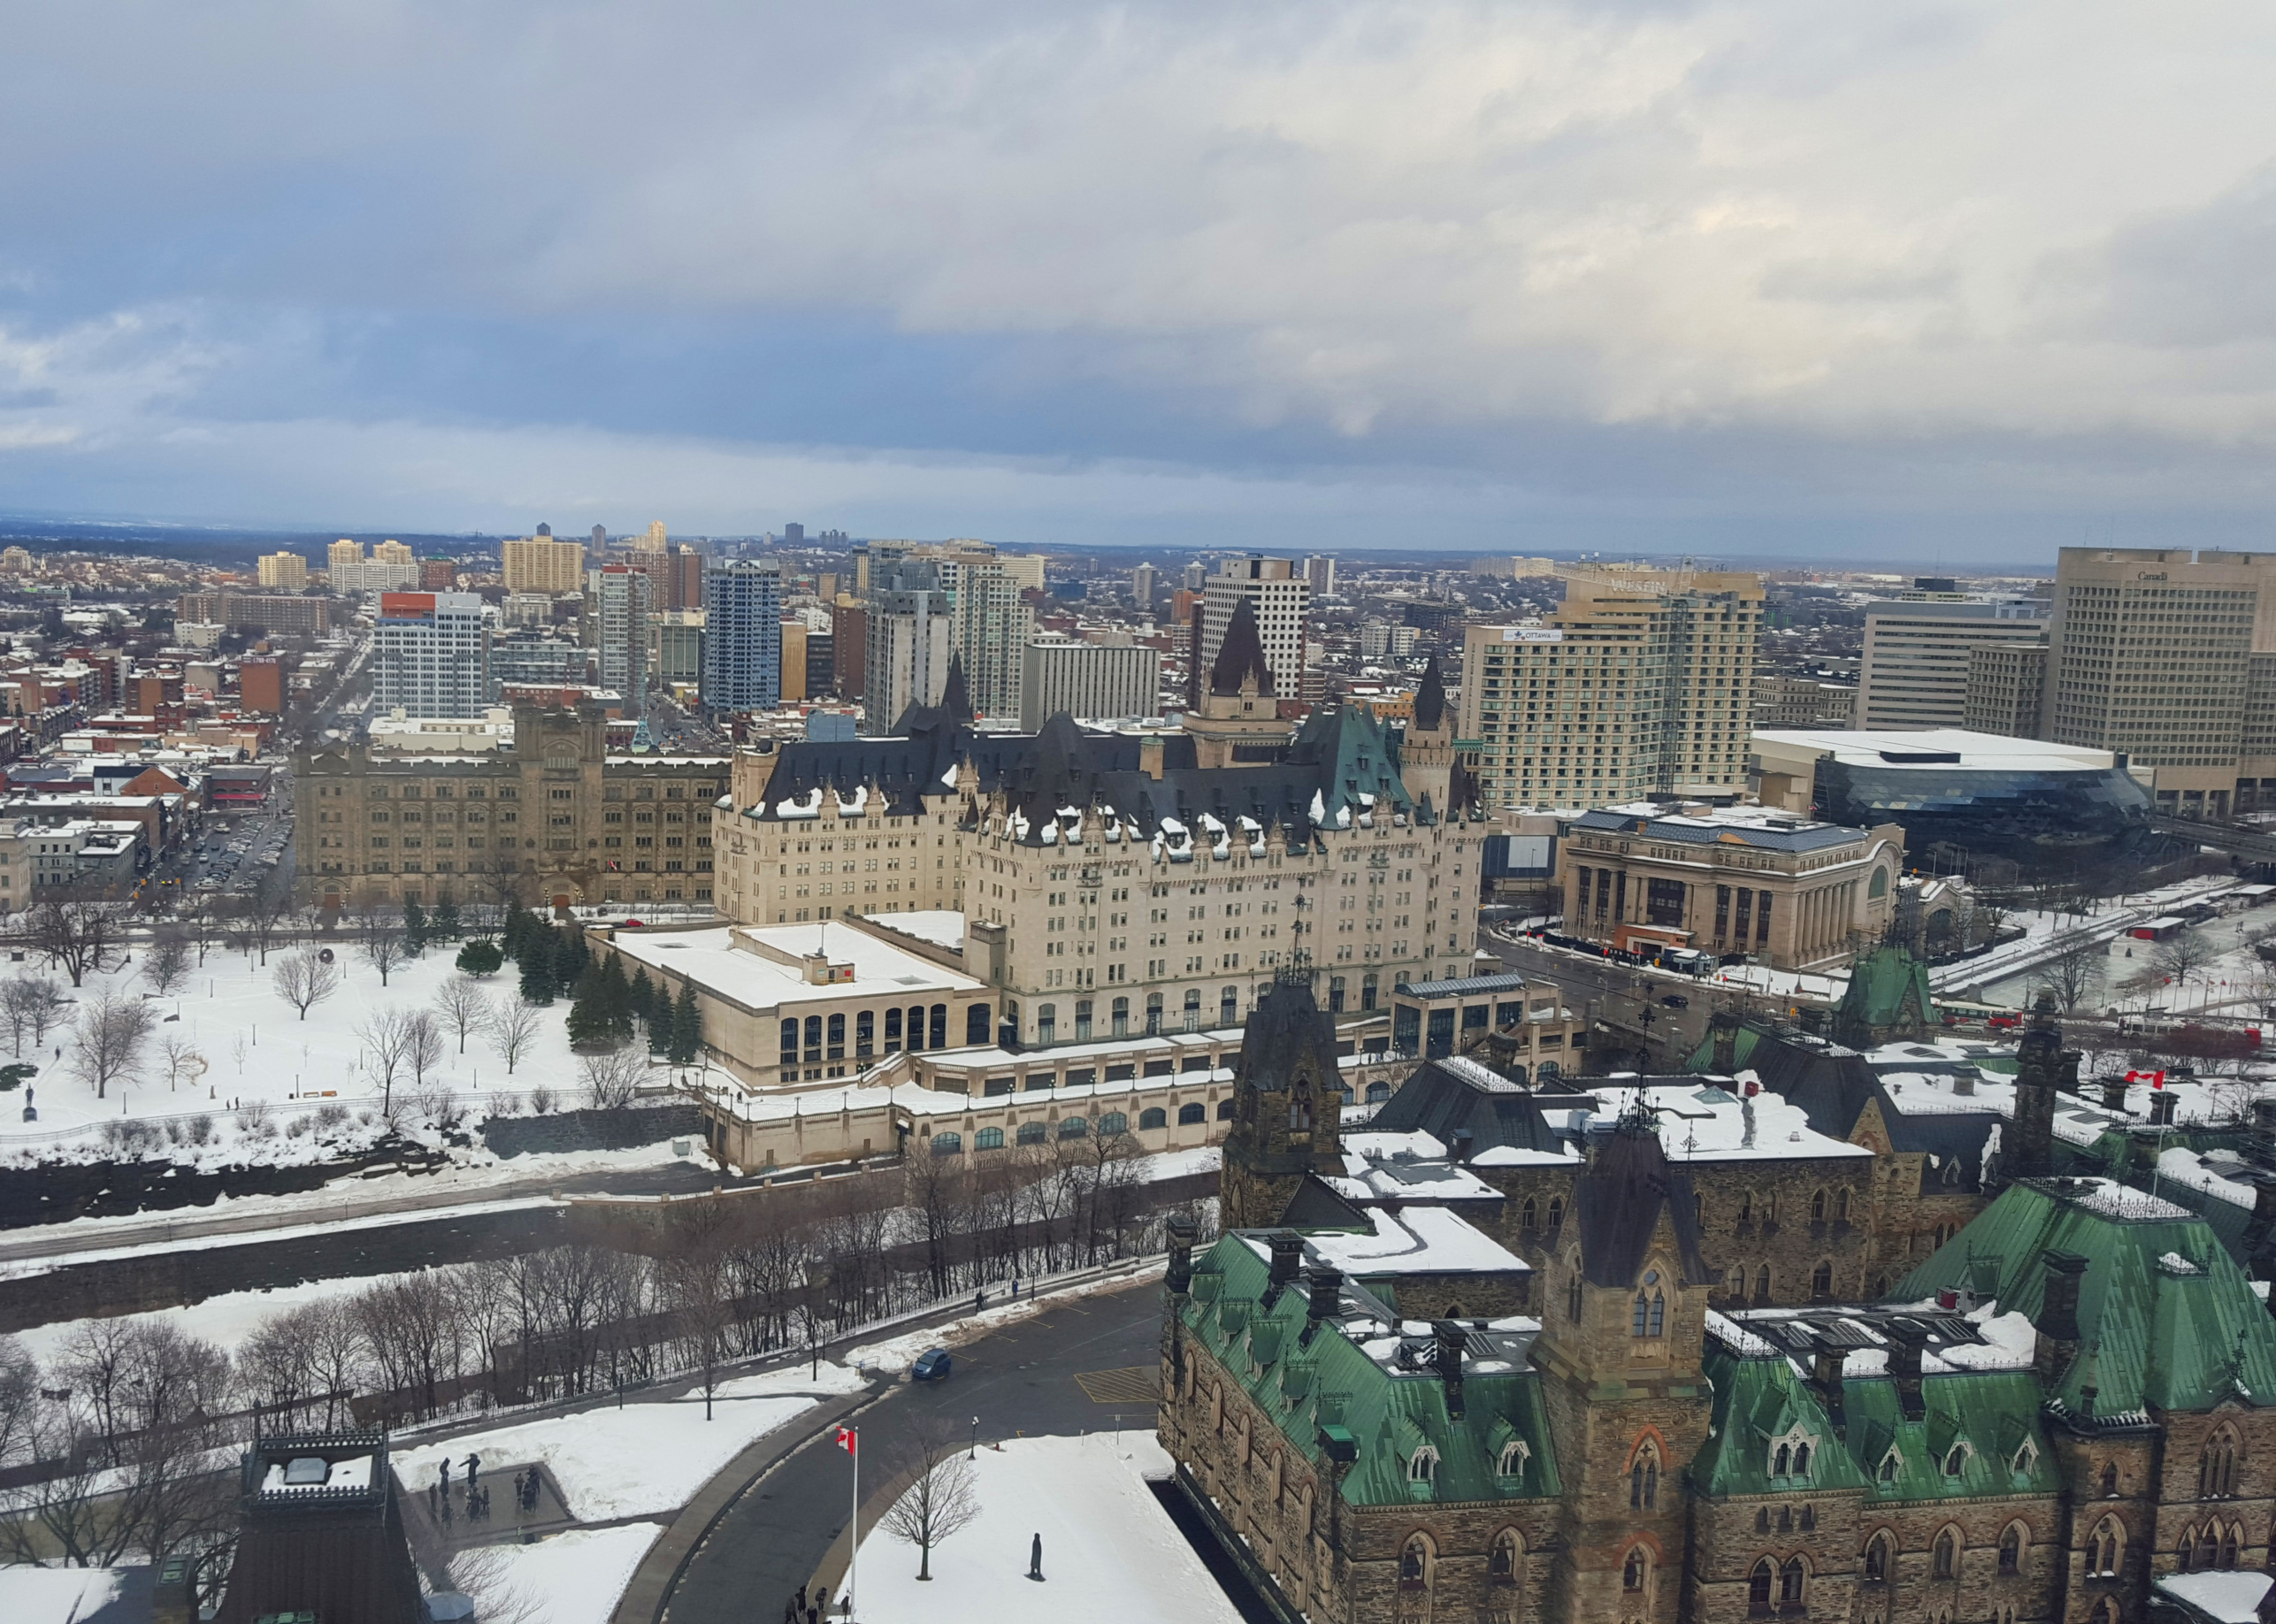 View of the Rideau Canal in Ottawa, Ontario